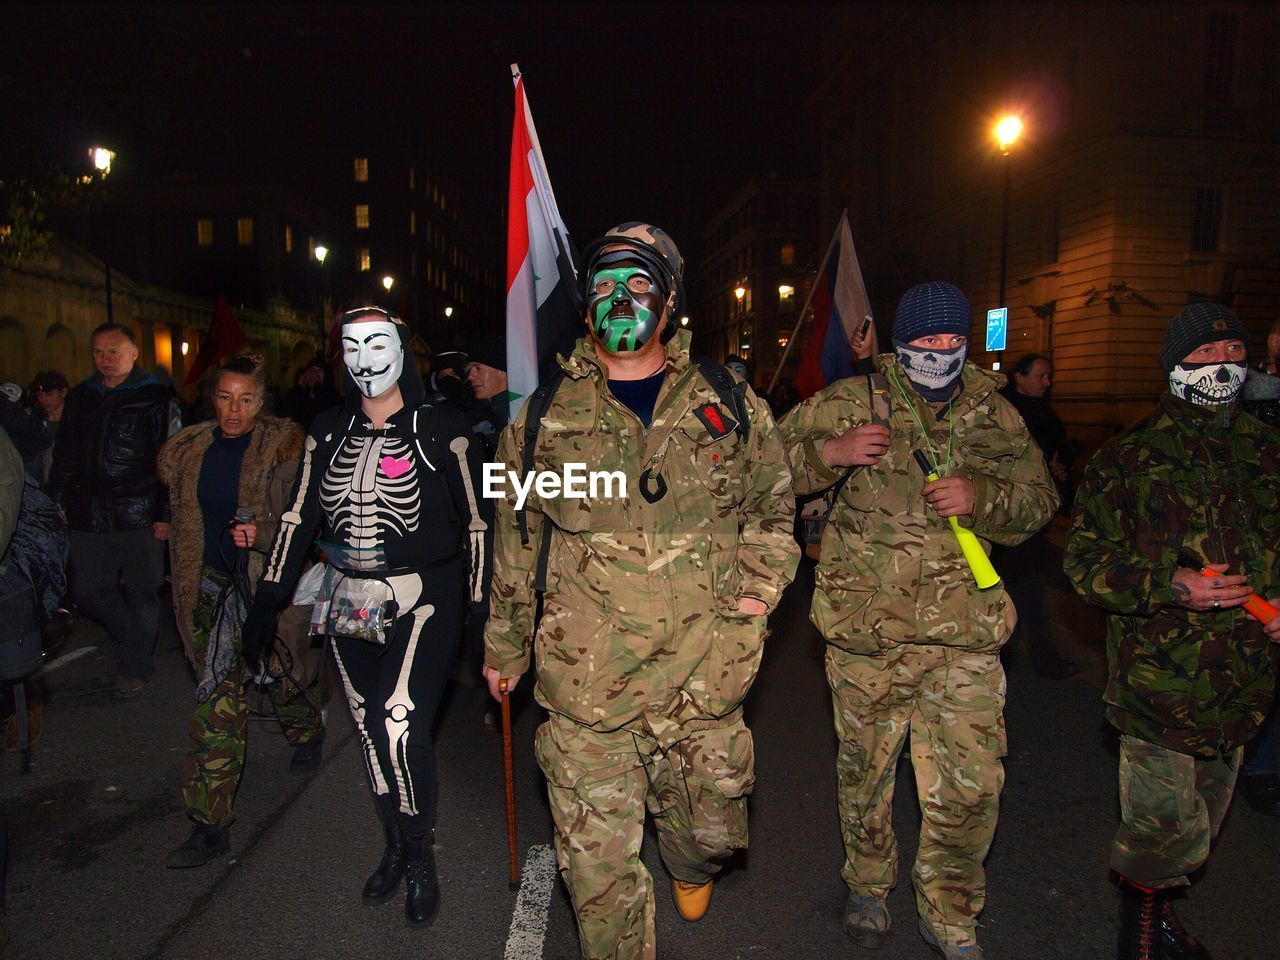 night, large group of people, real people, costume, lifestyles, men, outdoors, togetherness, camouflage clothing, headwear, people, adult